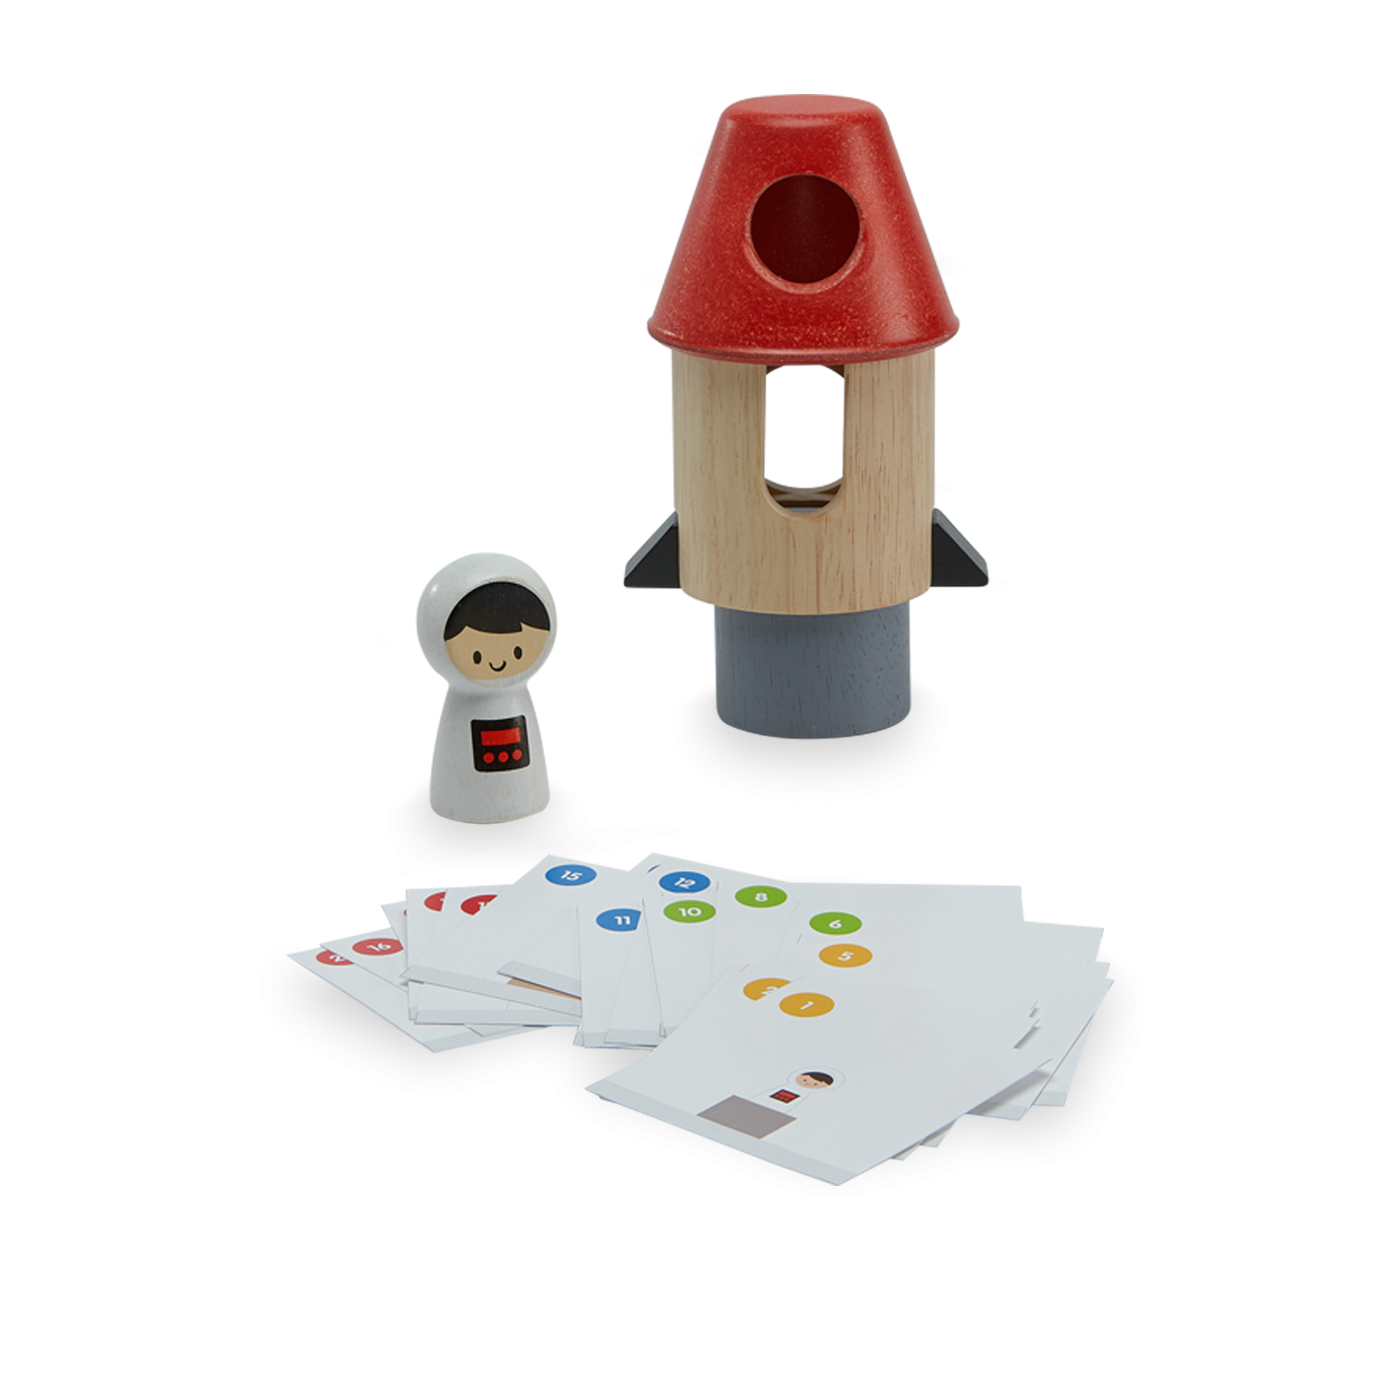 5404_PlanToys_Spatial_Rocket_Learning_and_Education_2yrs_Language_and_Communications_Imagination_Coordination_Visual_Mathematical_Problem_Solving_Wooden_toys_Education_toys_Safety_Toys_Non-toxic_0.png